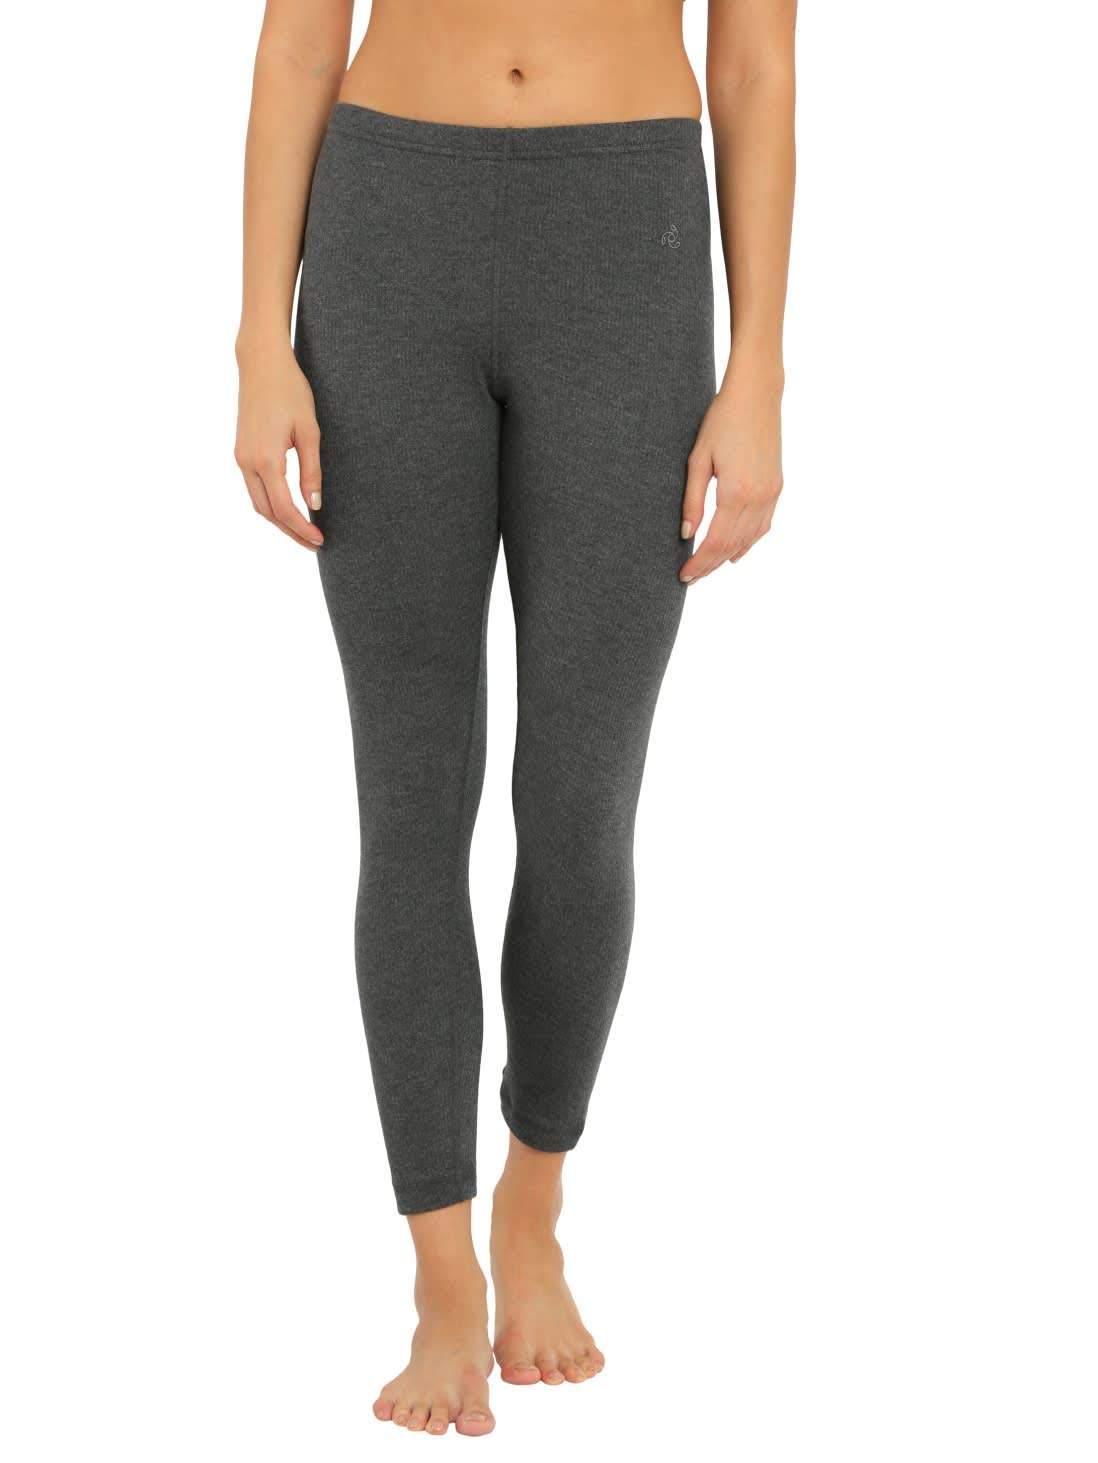 Women's Cotton Thermal Leggings (2520-0105-CHAML_Charcoal Melange_Large)